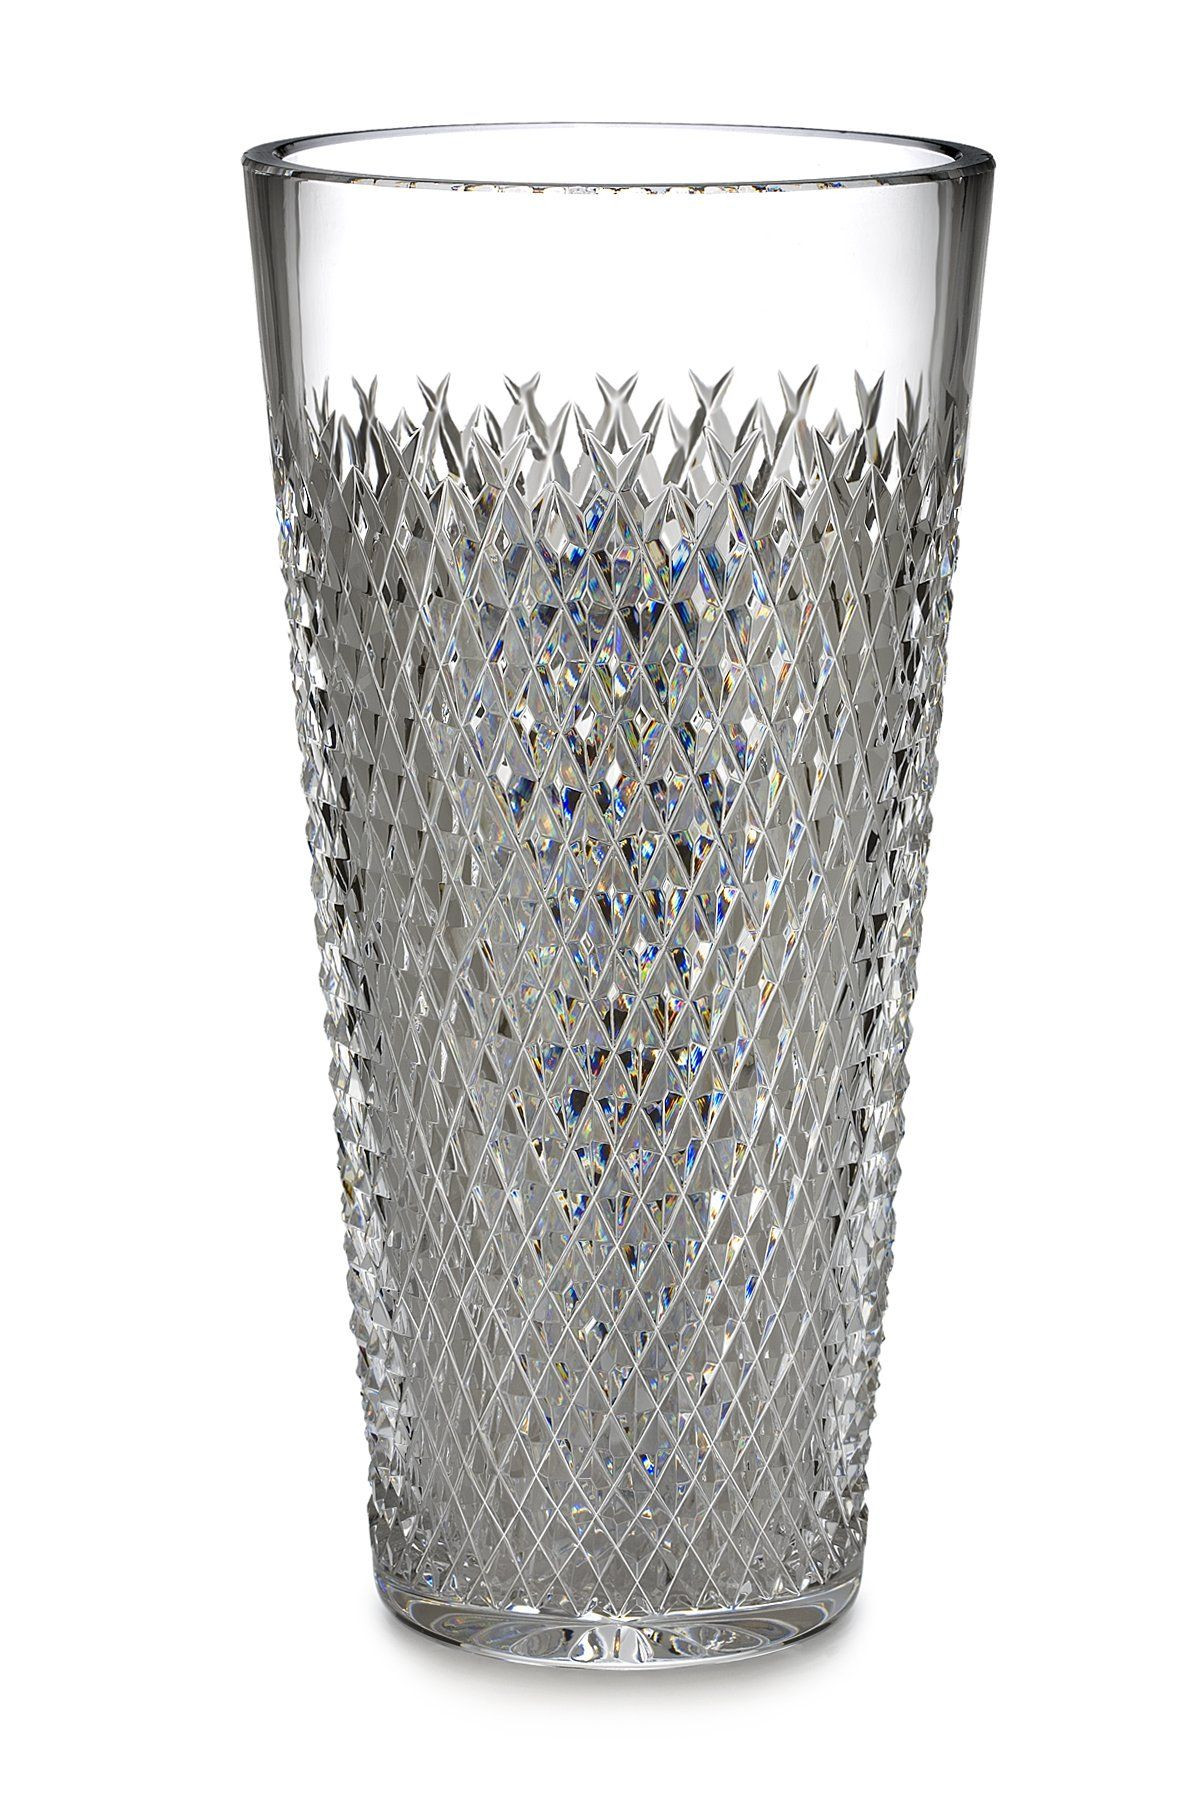 Waterford Crystal Flower Vase Of Waterford Alana 12 Inch Vase 12 Inch Vase Crystal Alana Vases with Regard to Waterford Alana 12 Inch Vase 12 Inch Vase Crystal Alana